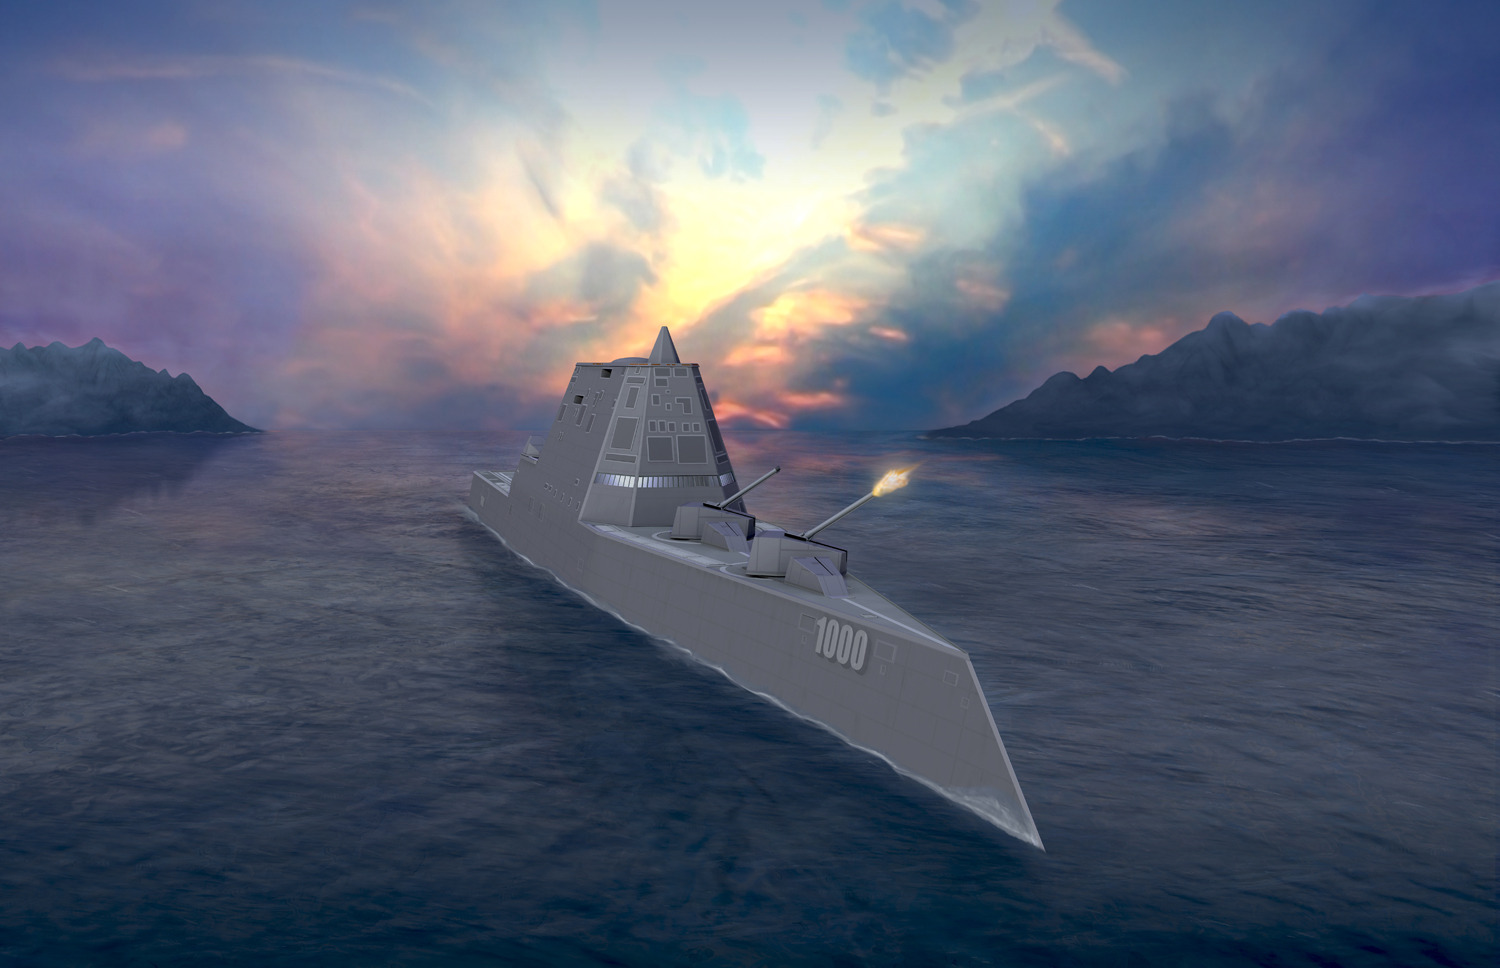 The DDG 1000